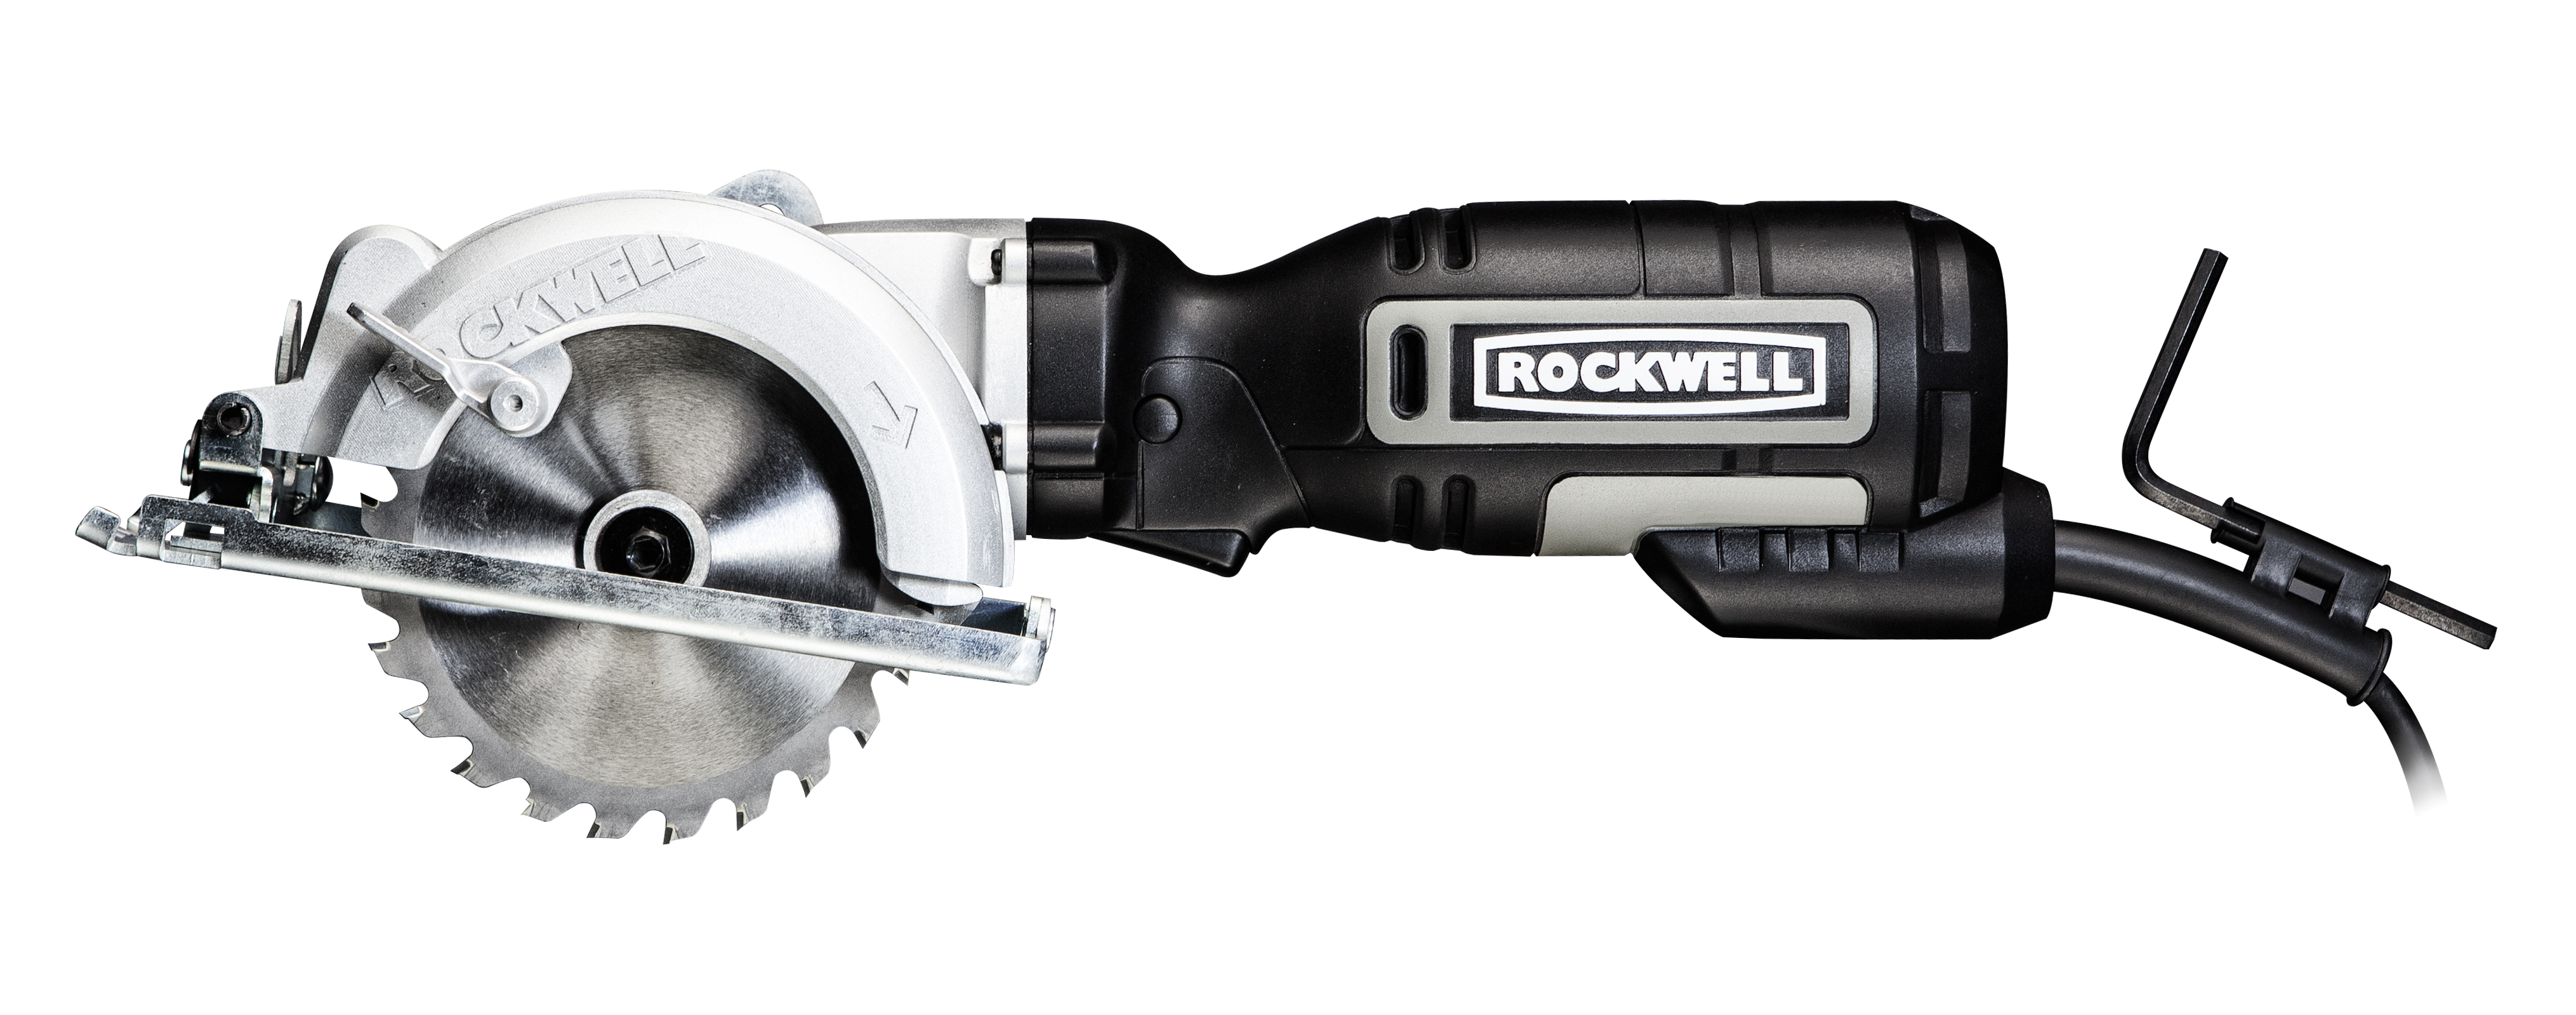 New rockwell shop tools are asset to any workshop rockwell compact circular saw keyboard keysfo Images